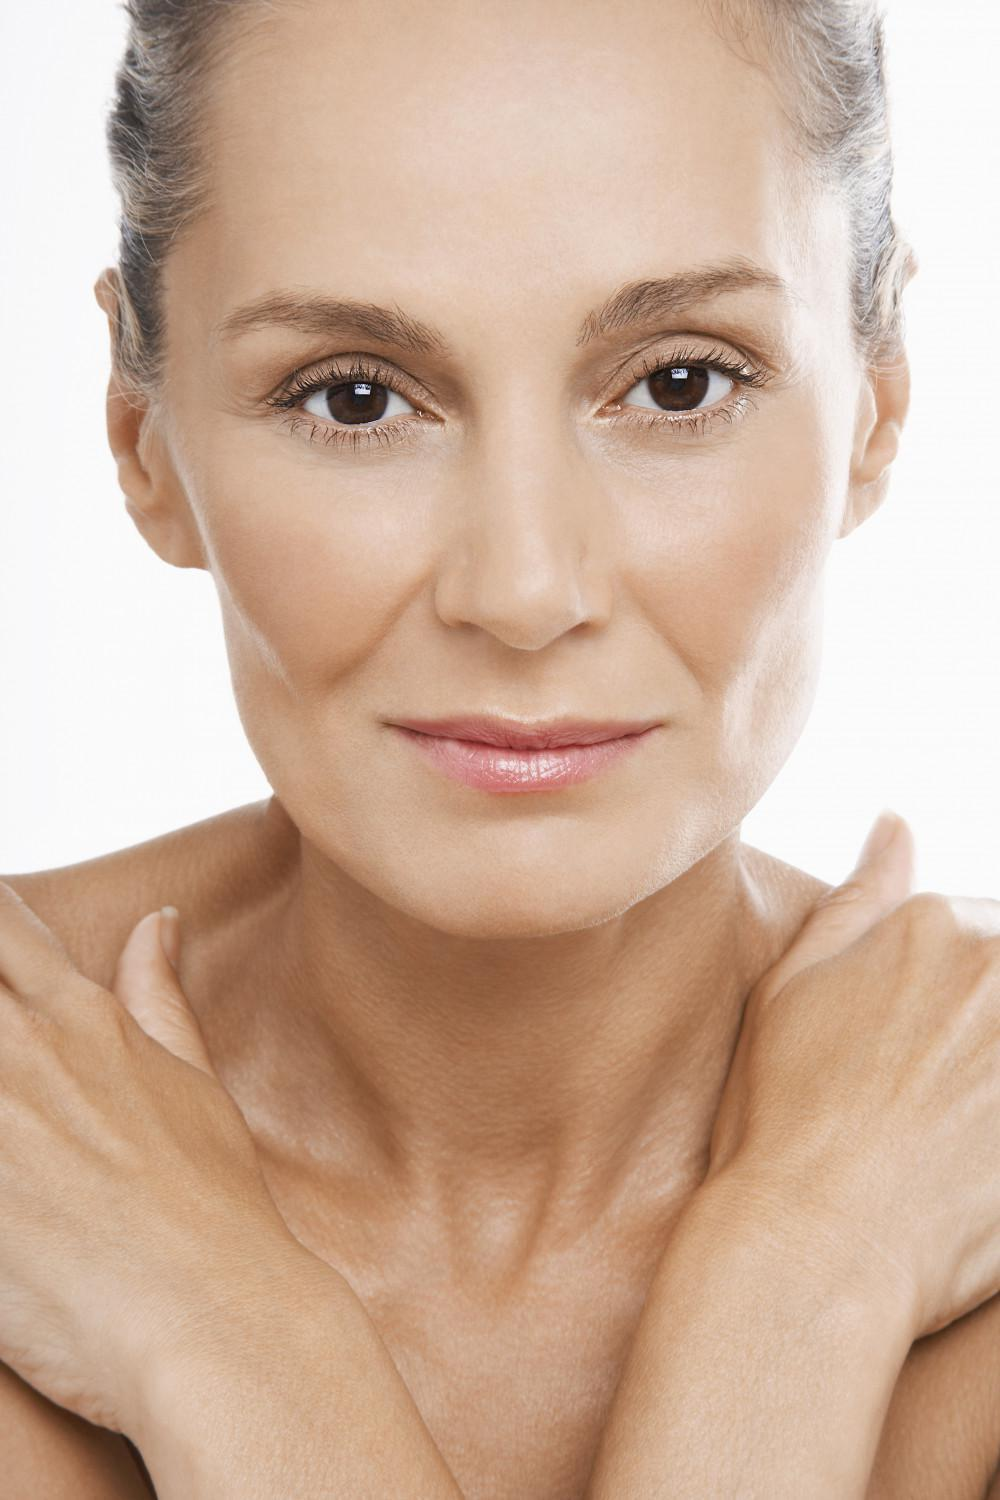 Skin Tightening, Can You Tighten Loose Skin? Discover the Power of Exilis for Skin Tightening